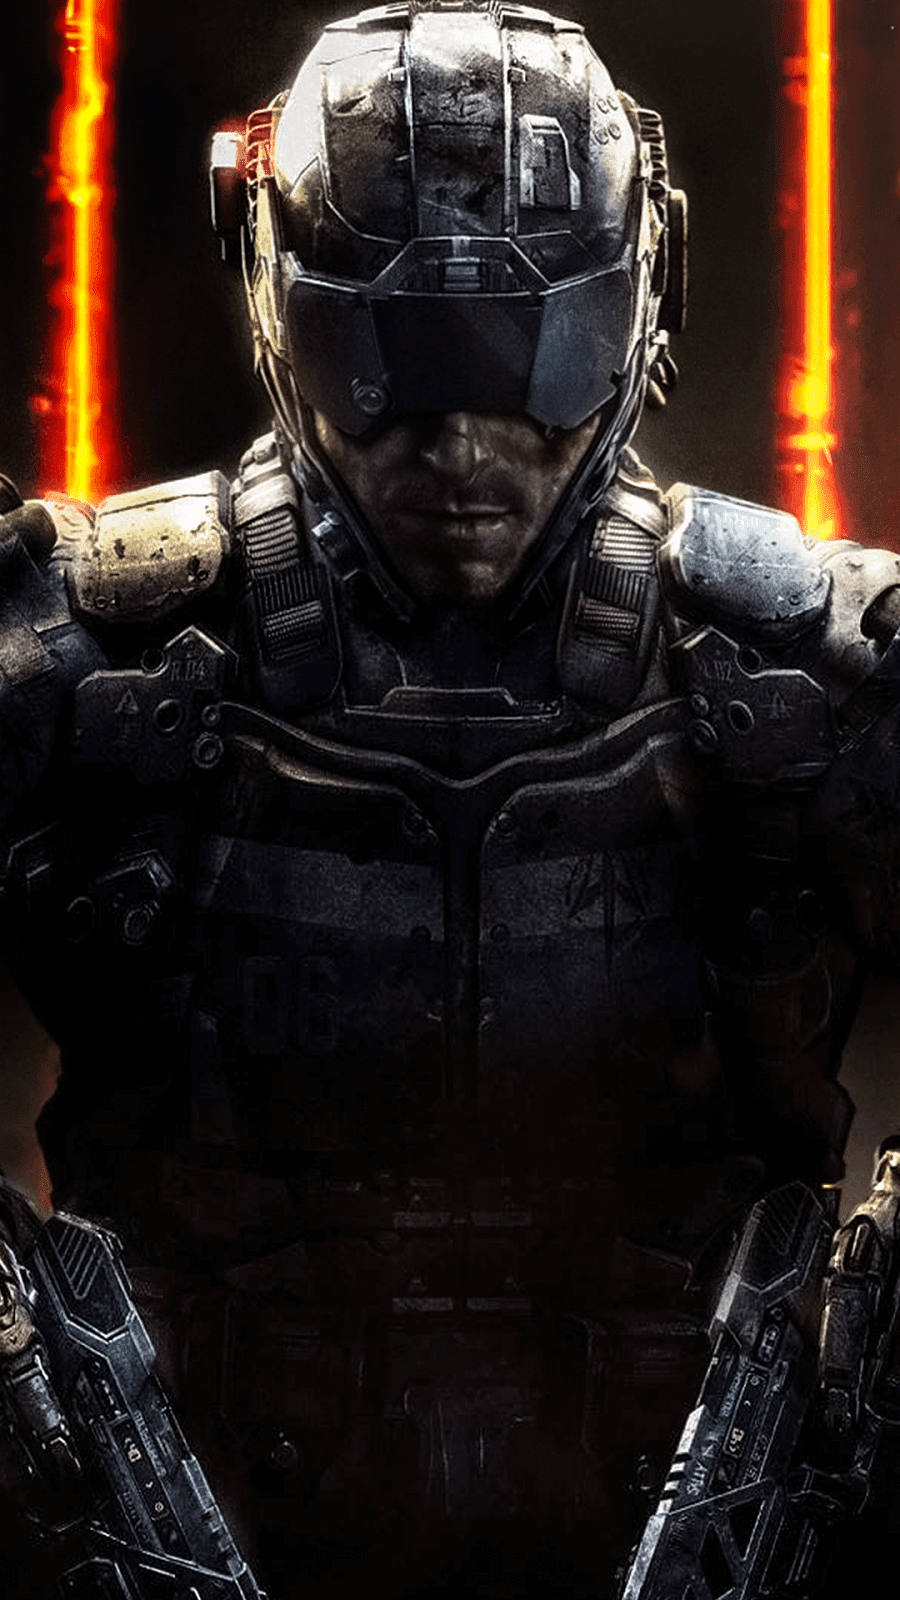 Black Ops Wallpaper Free New Wallpapers Hd High Quality Motion